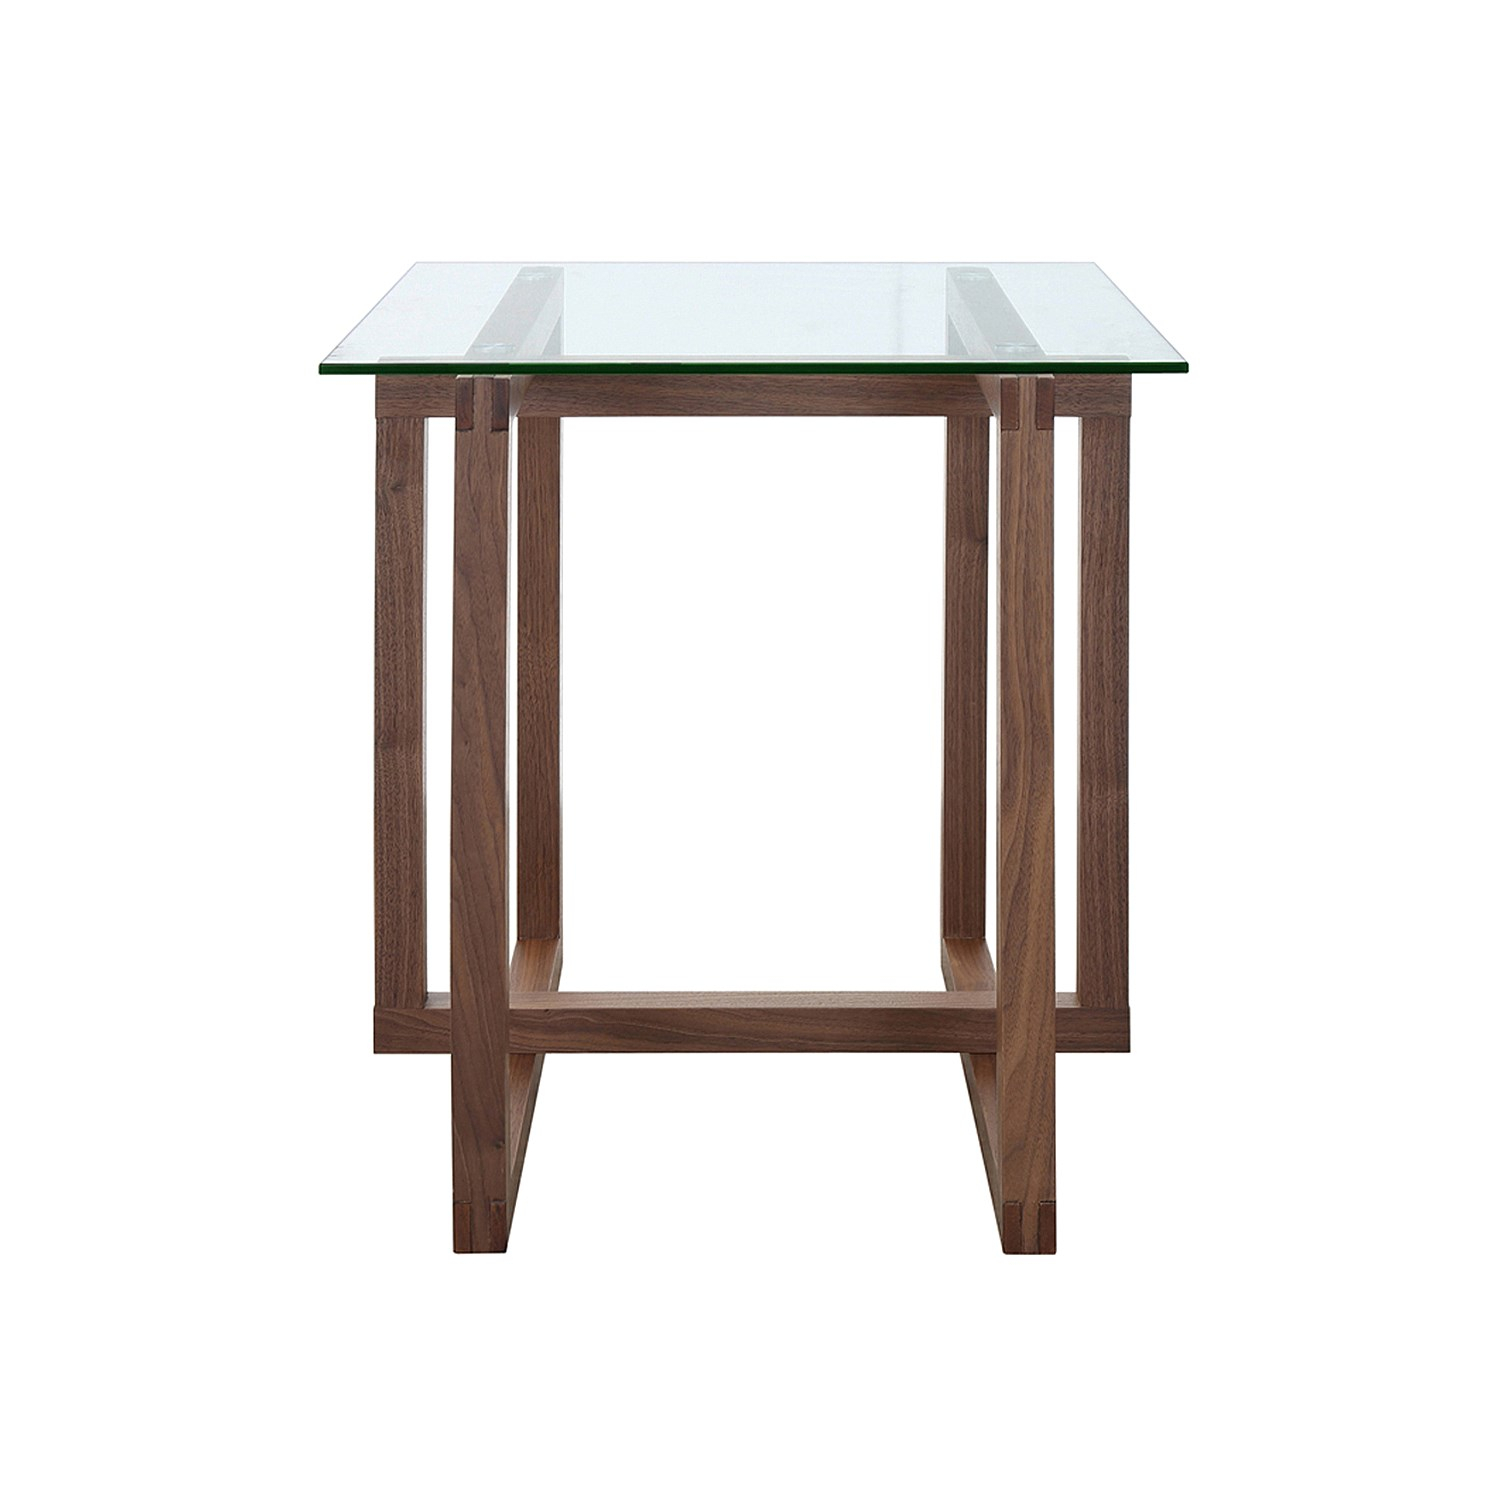 Living Room Furniture,view Range Online Now – Kyra Side Table 55x55cm For Kyra Console Tables (View 8 of 30)